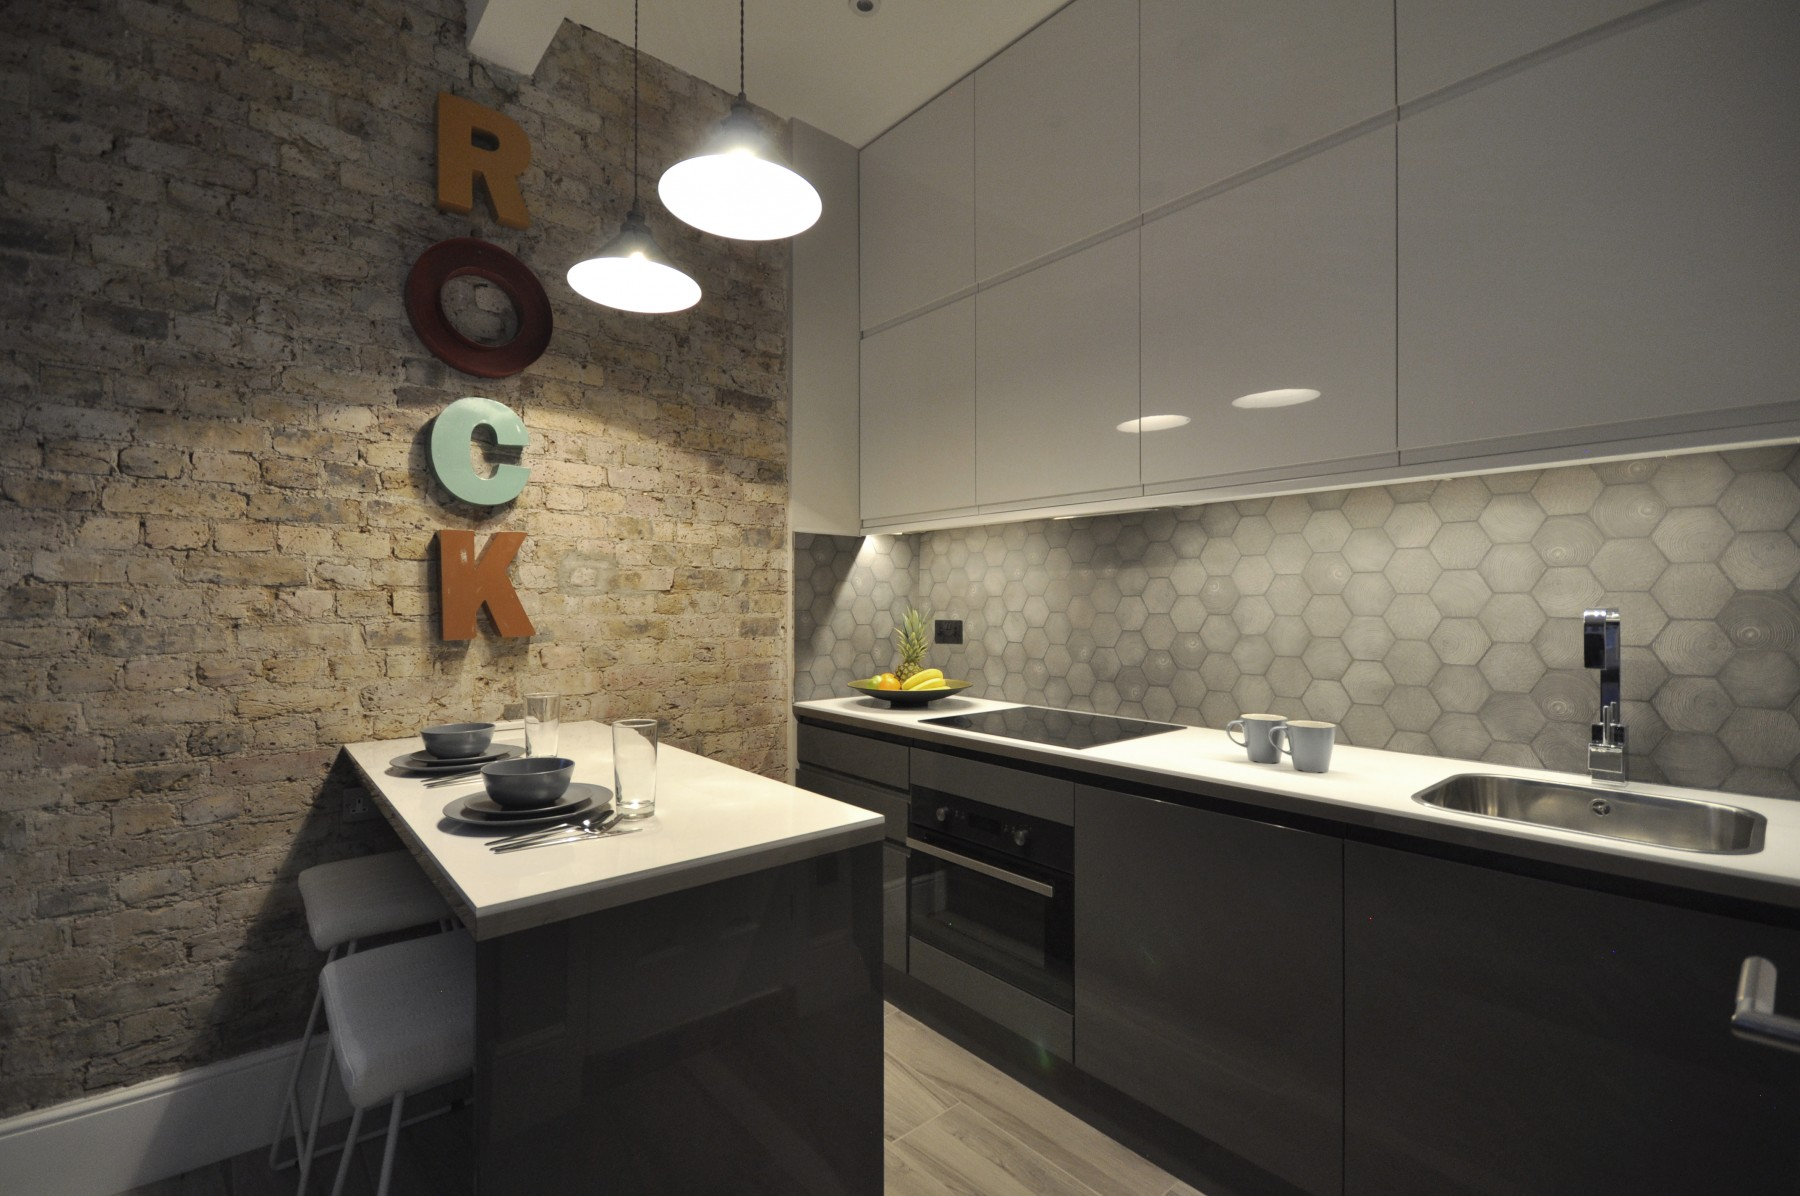 Notting Hill Apartments kitchen